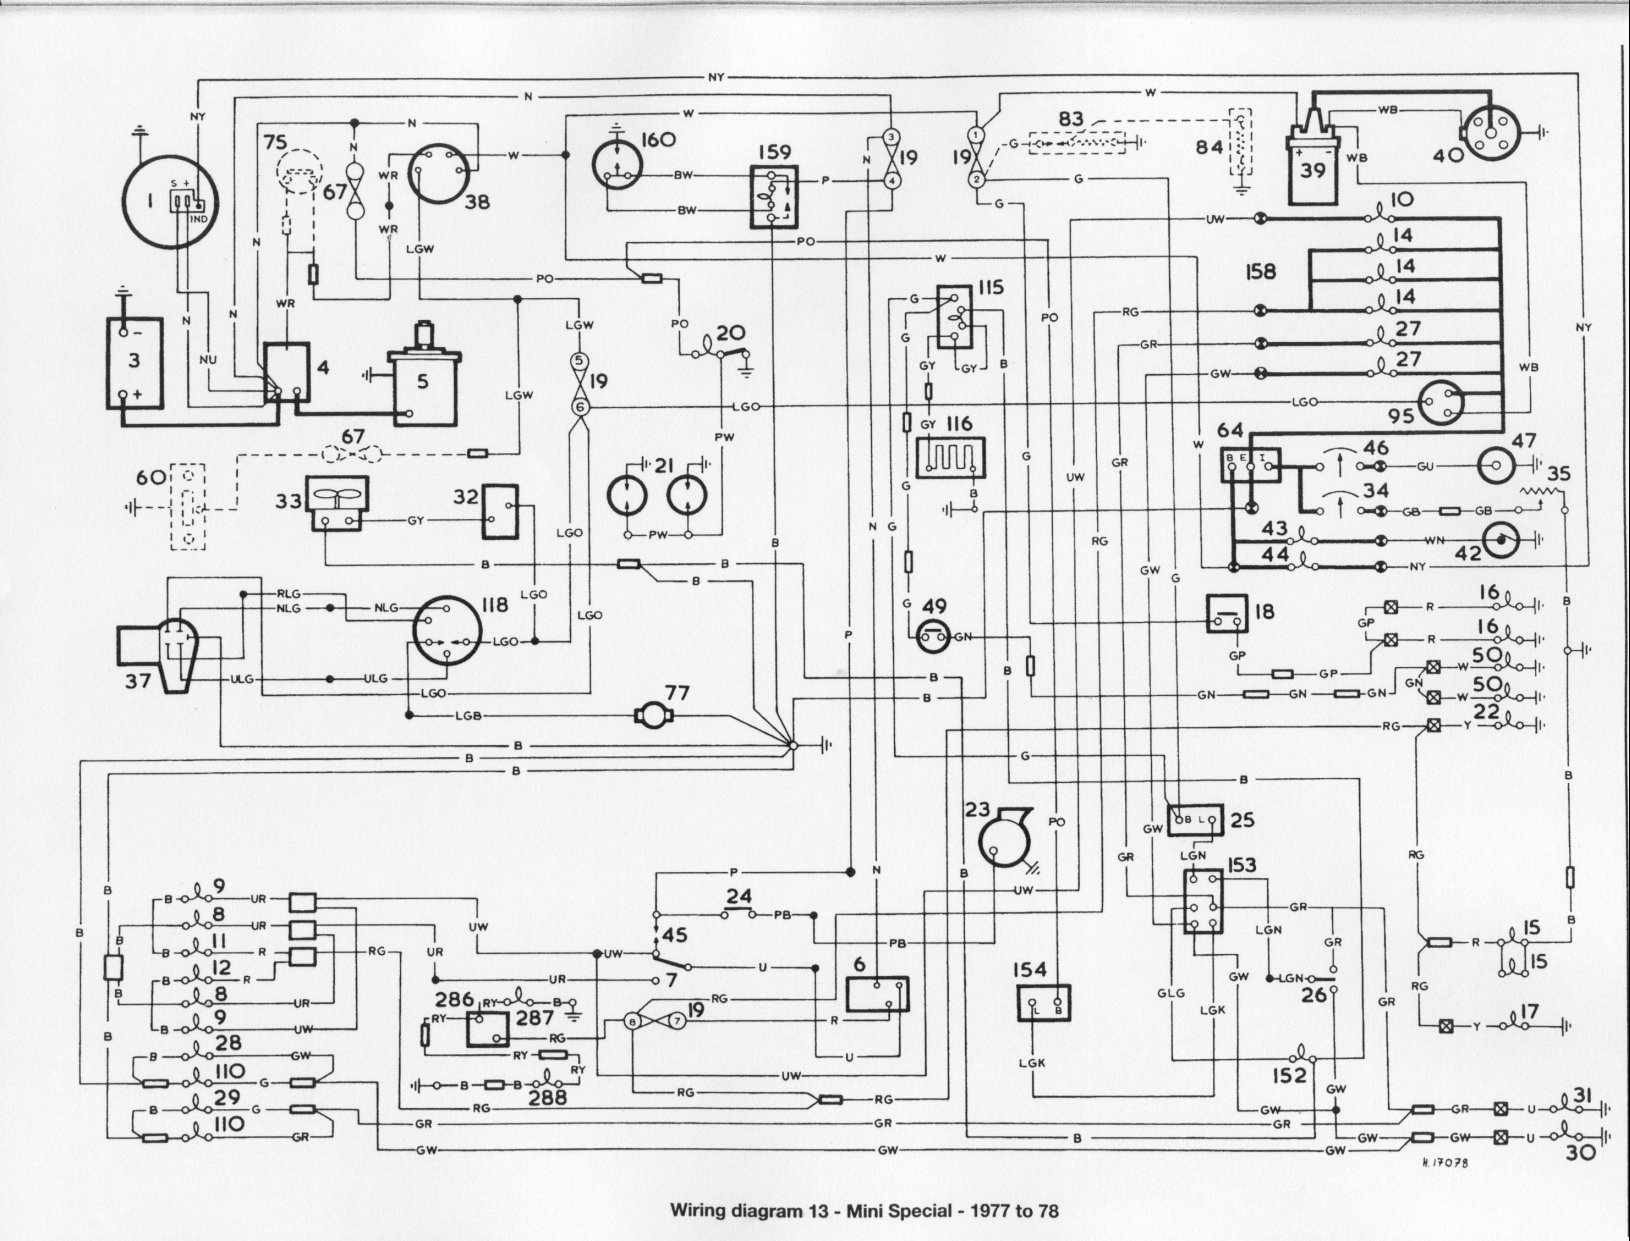 Bmw Mini Wiring Diagram | Wiring Schematic Diagram Nissan Note Wiring Diagram Pdf on